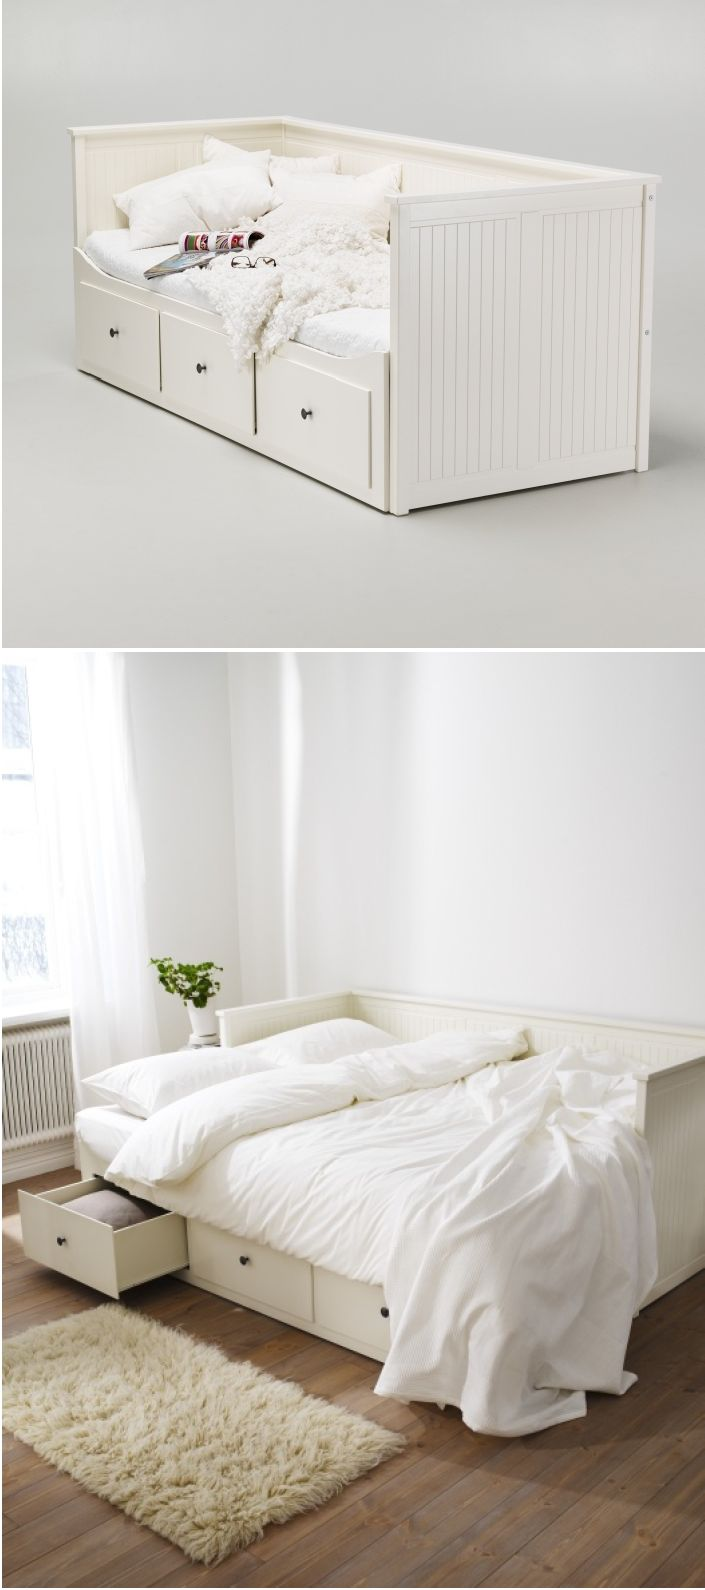 Create A Welcoming Bedroom Away From Home For Guests With The Hemnes